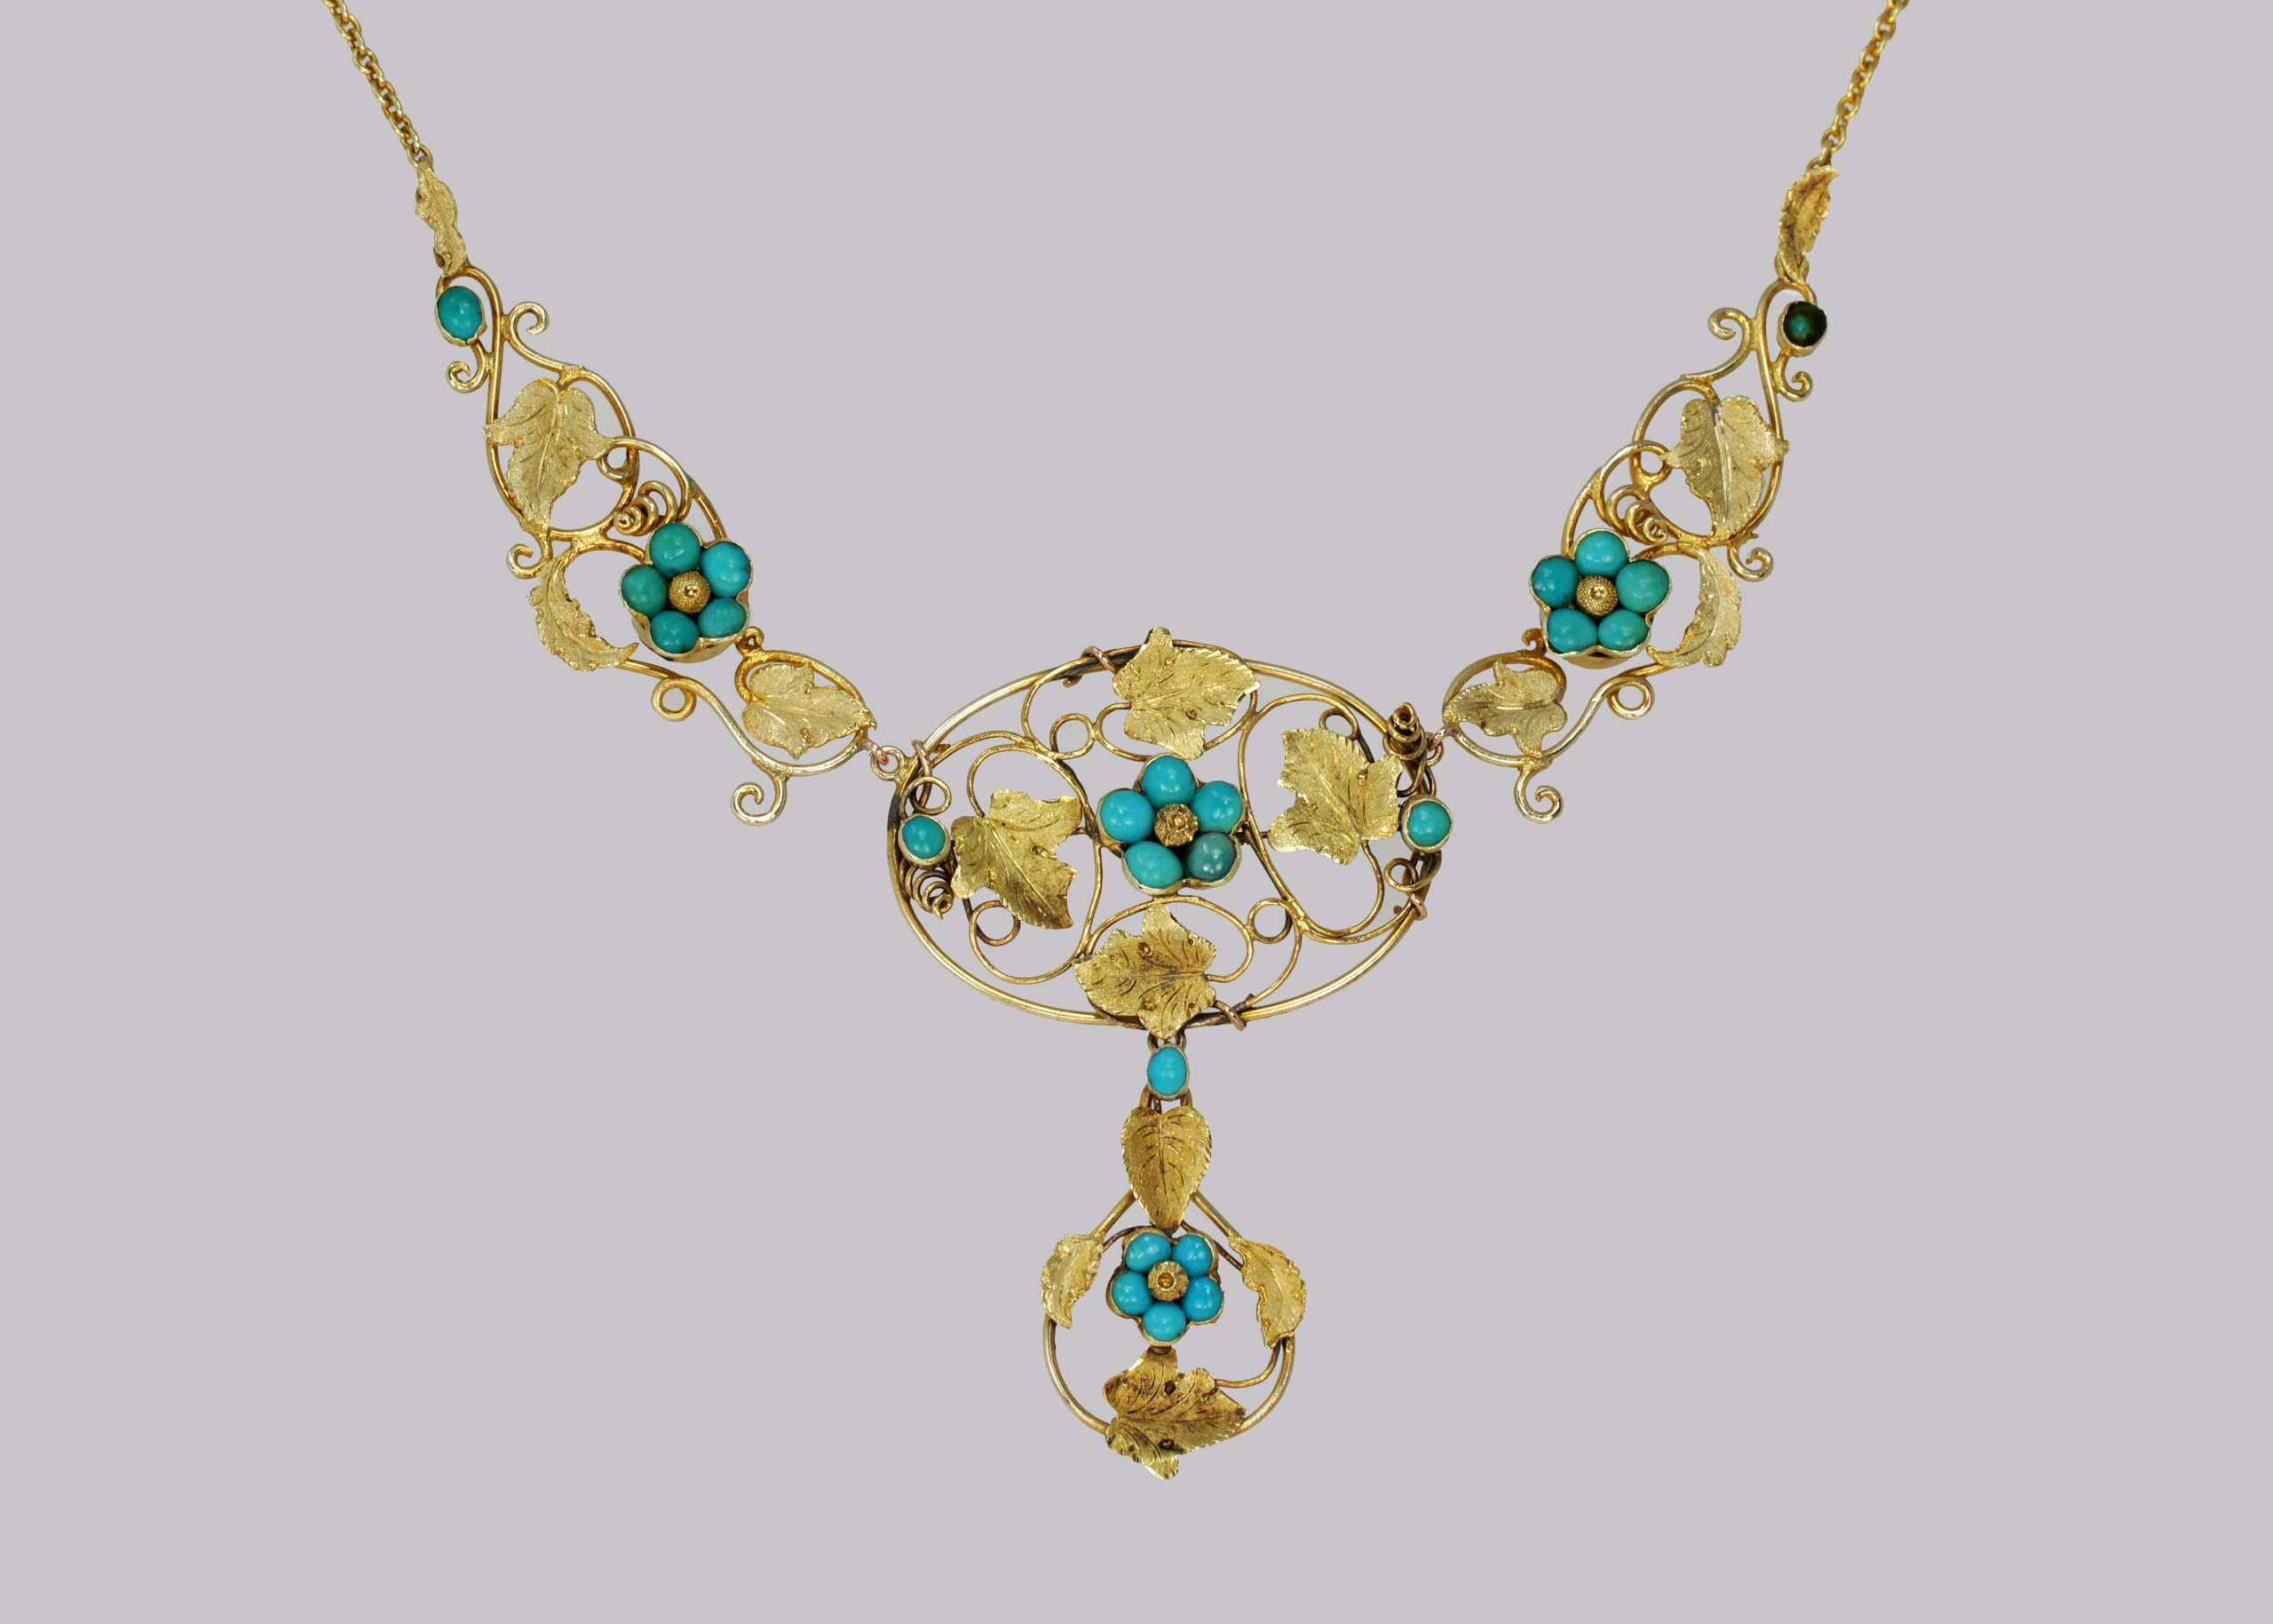 Turquoise necklace with naturalistic vine leaves